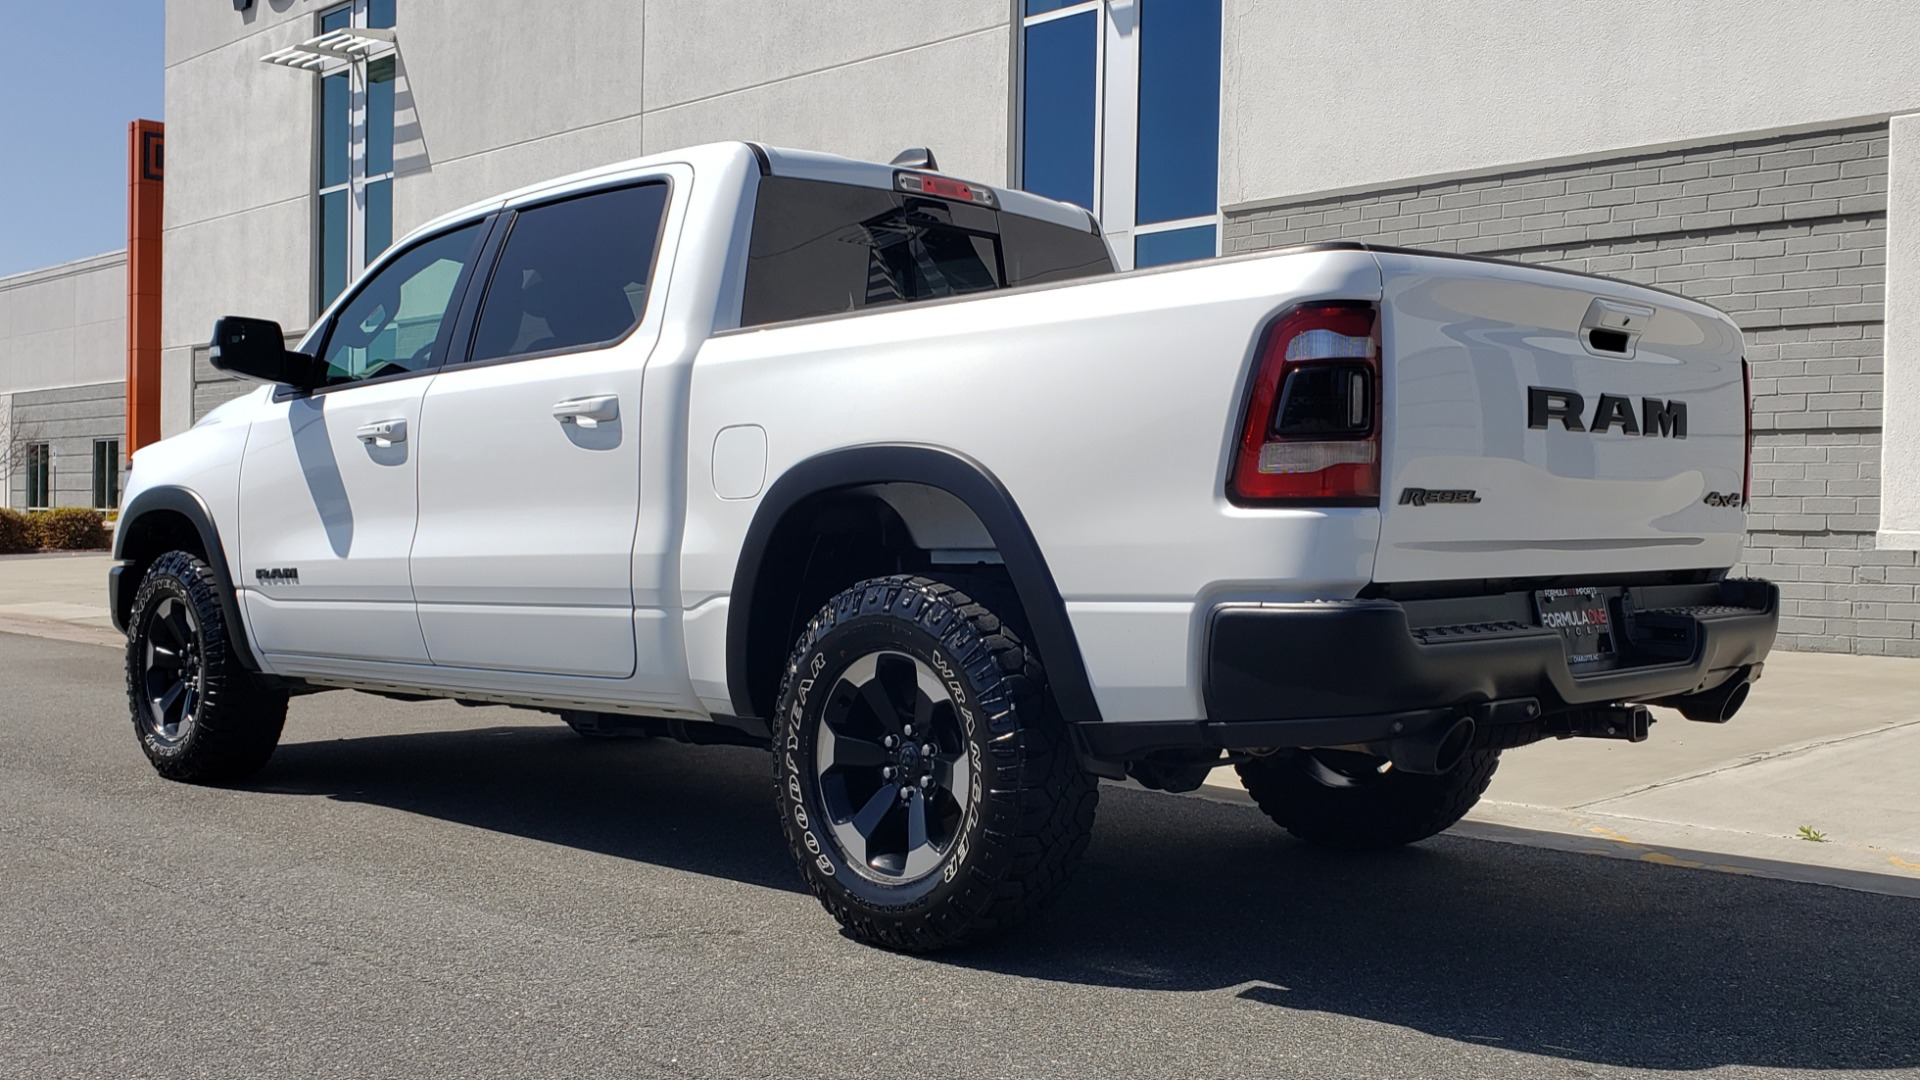 Used 2019 Ram 1500 REBEL CREWCAB 4X4 / 5.7L V8 HEMI / 8-SPD AUTO / REARVIEW for sale Sold at Formula Imports in Charlotte NC 28227 5